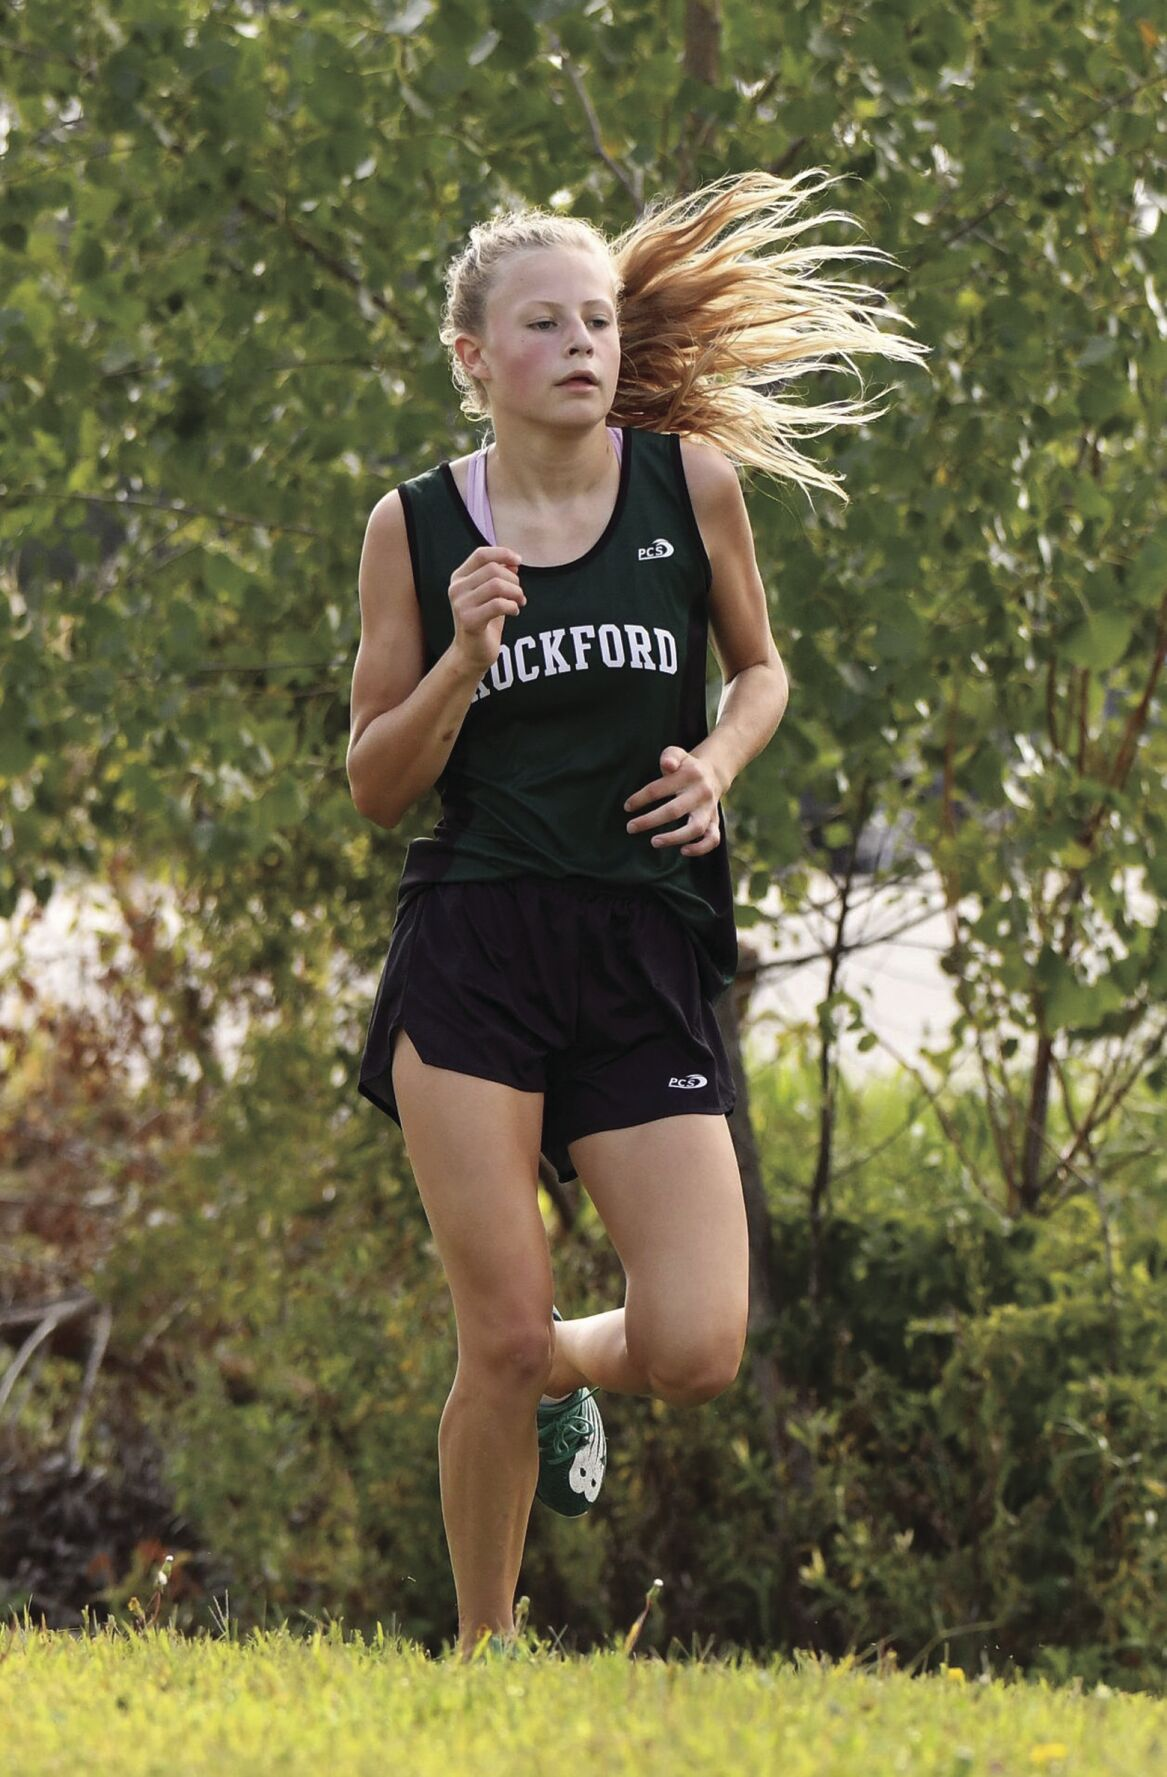 Rockford girls cross country runners moving up fast